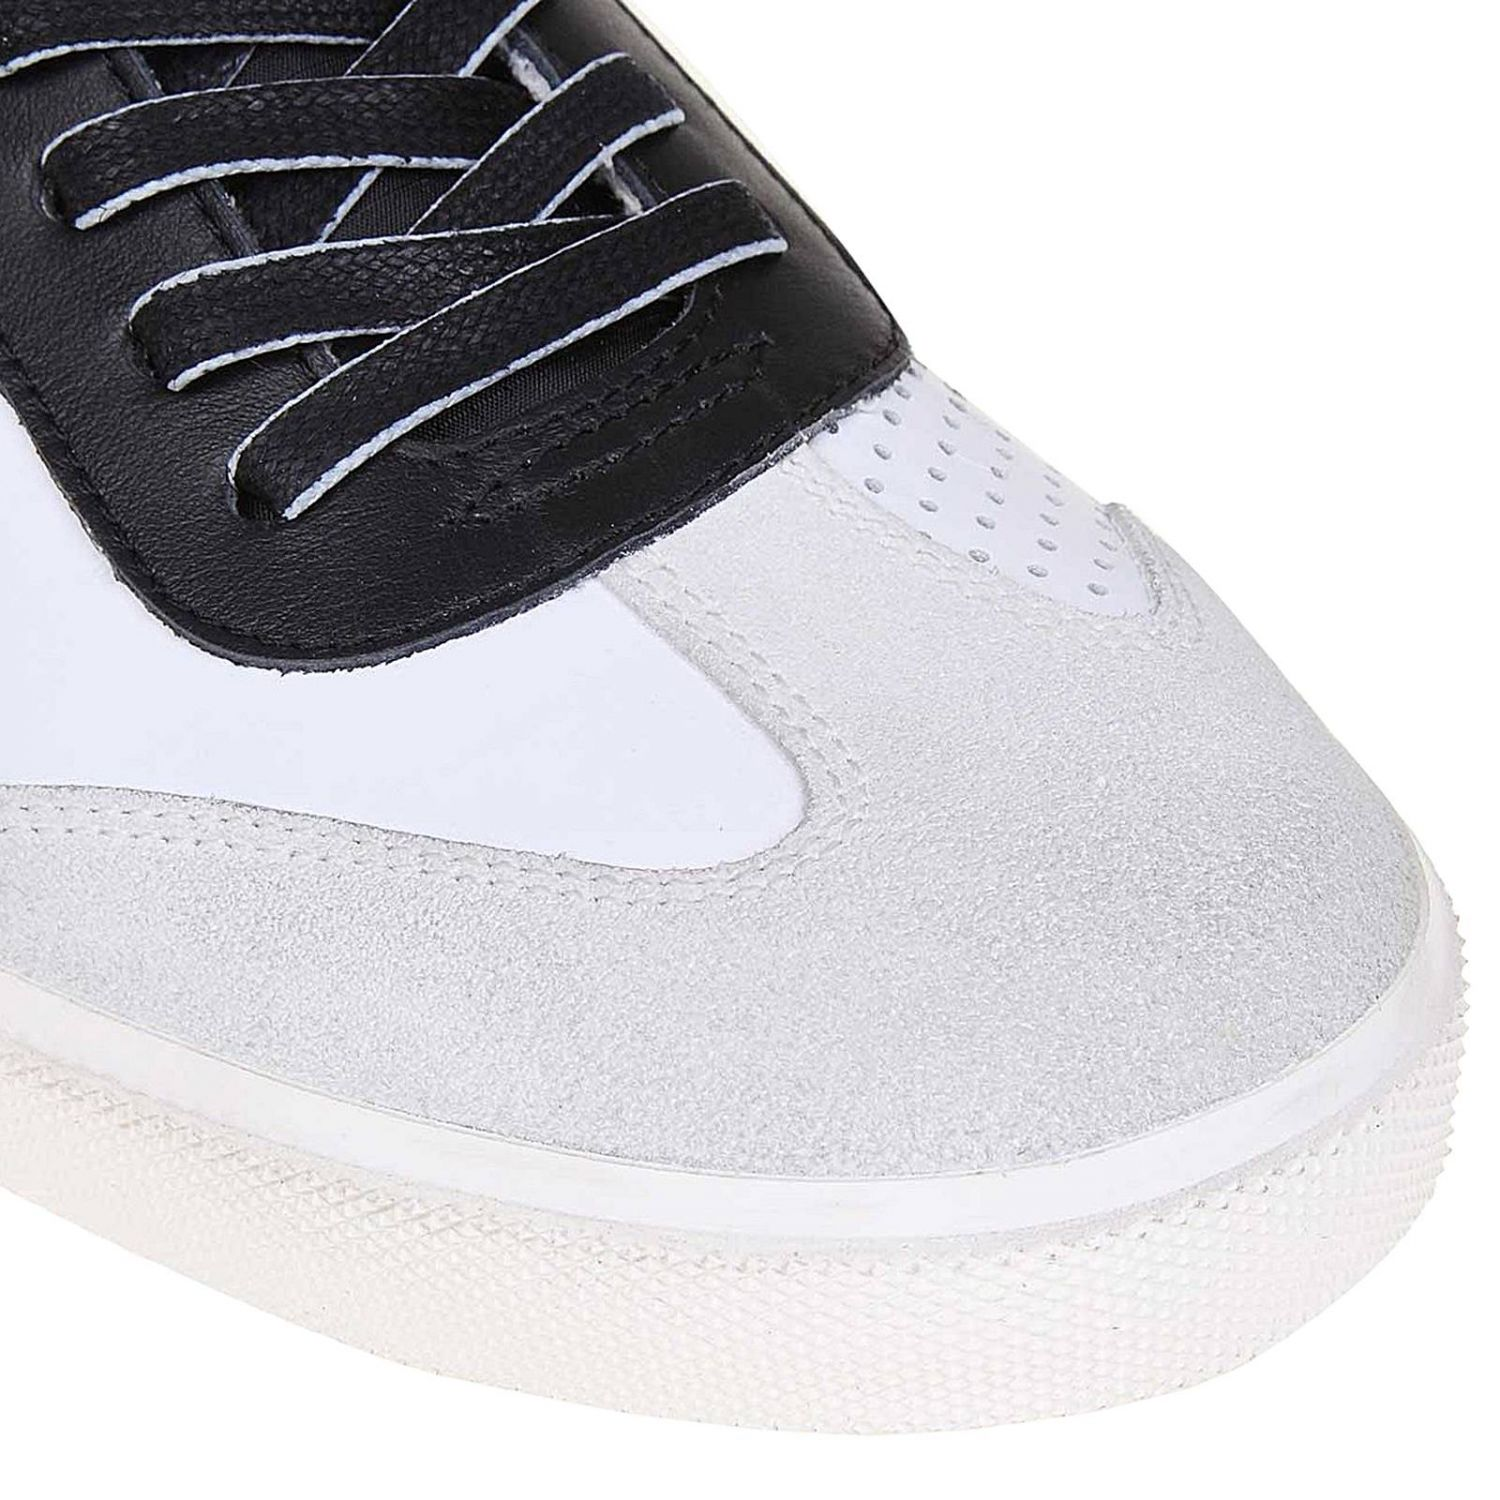 Trainers men Leather Crown white 3